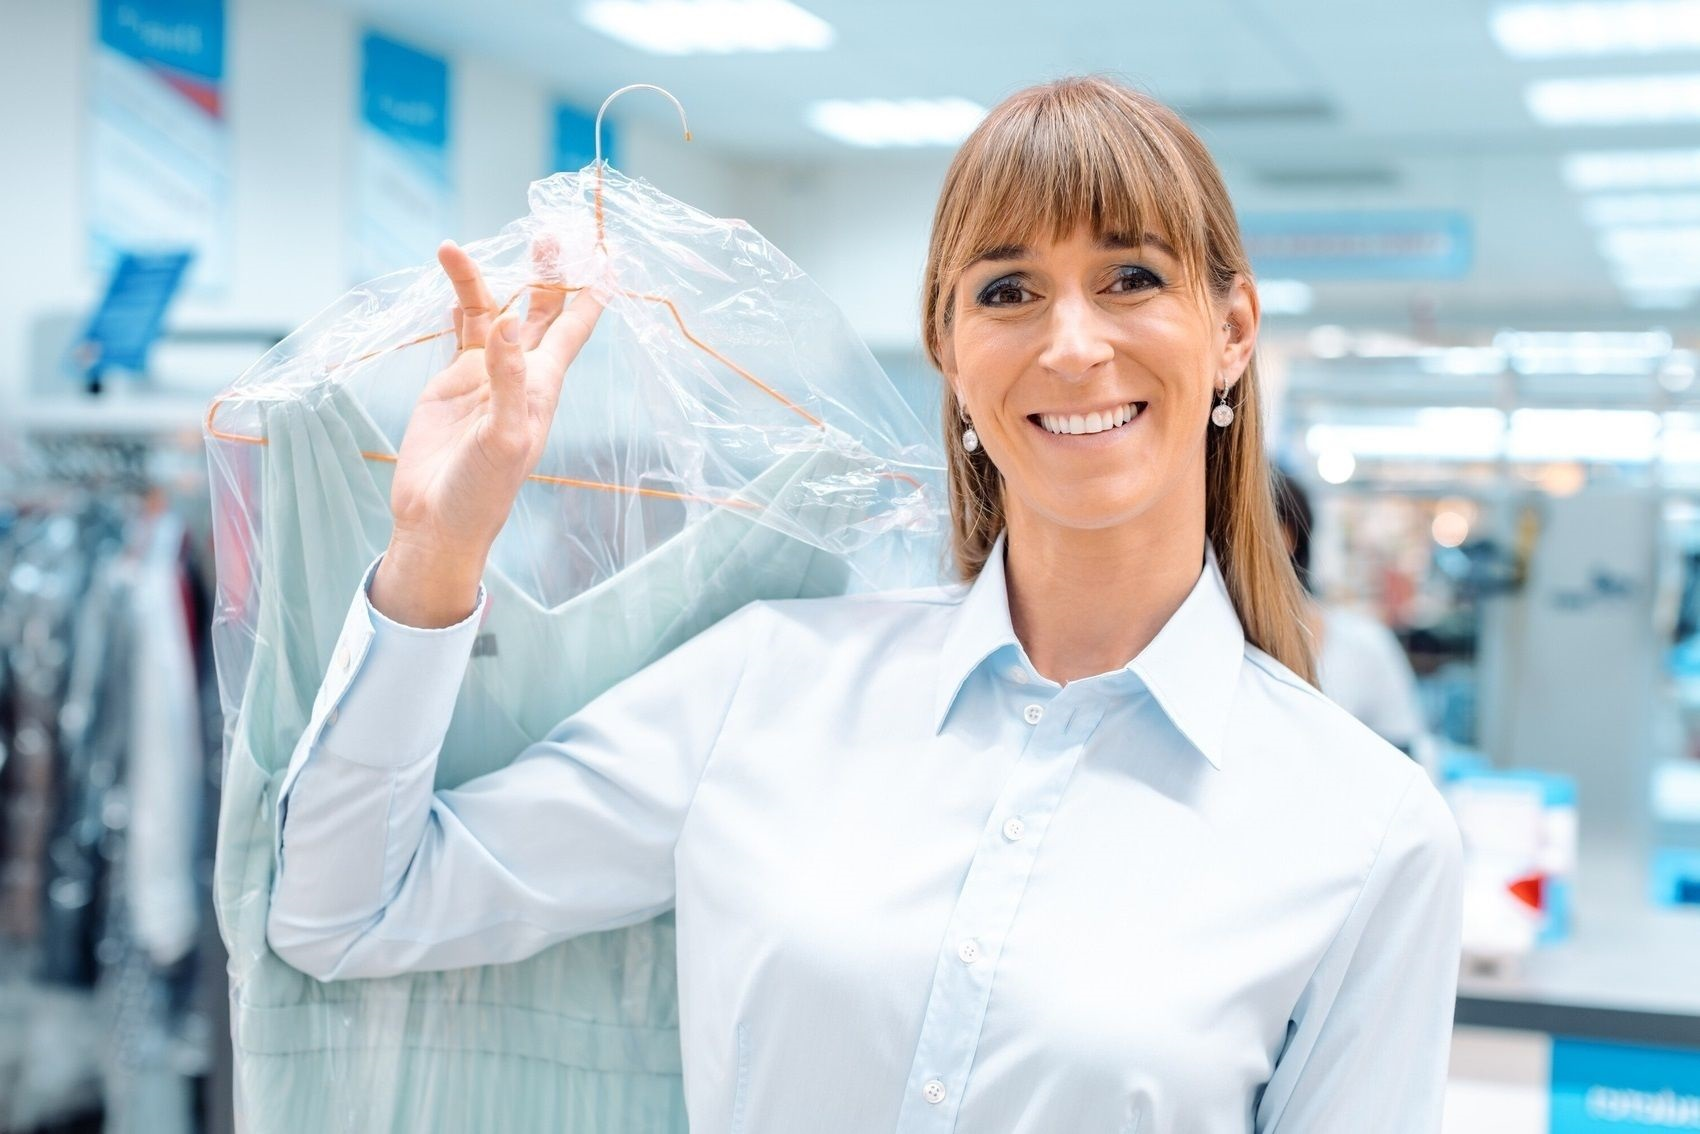 woman_delivering_hung_laundry